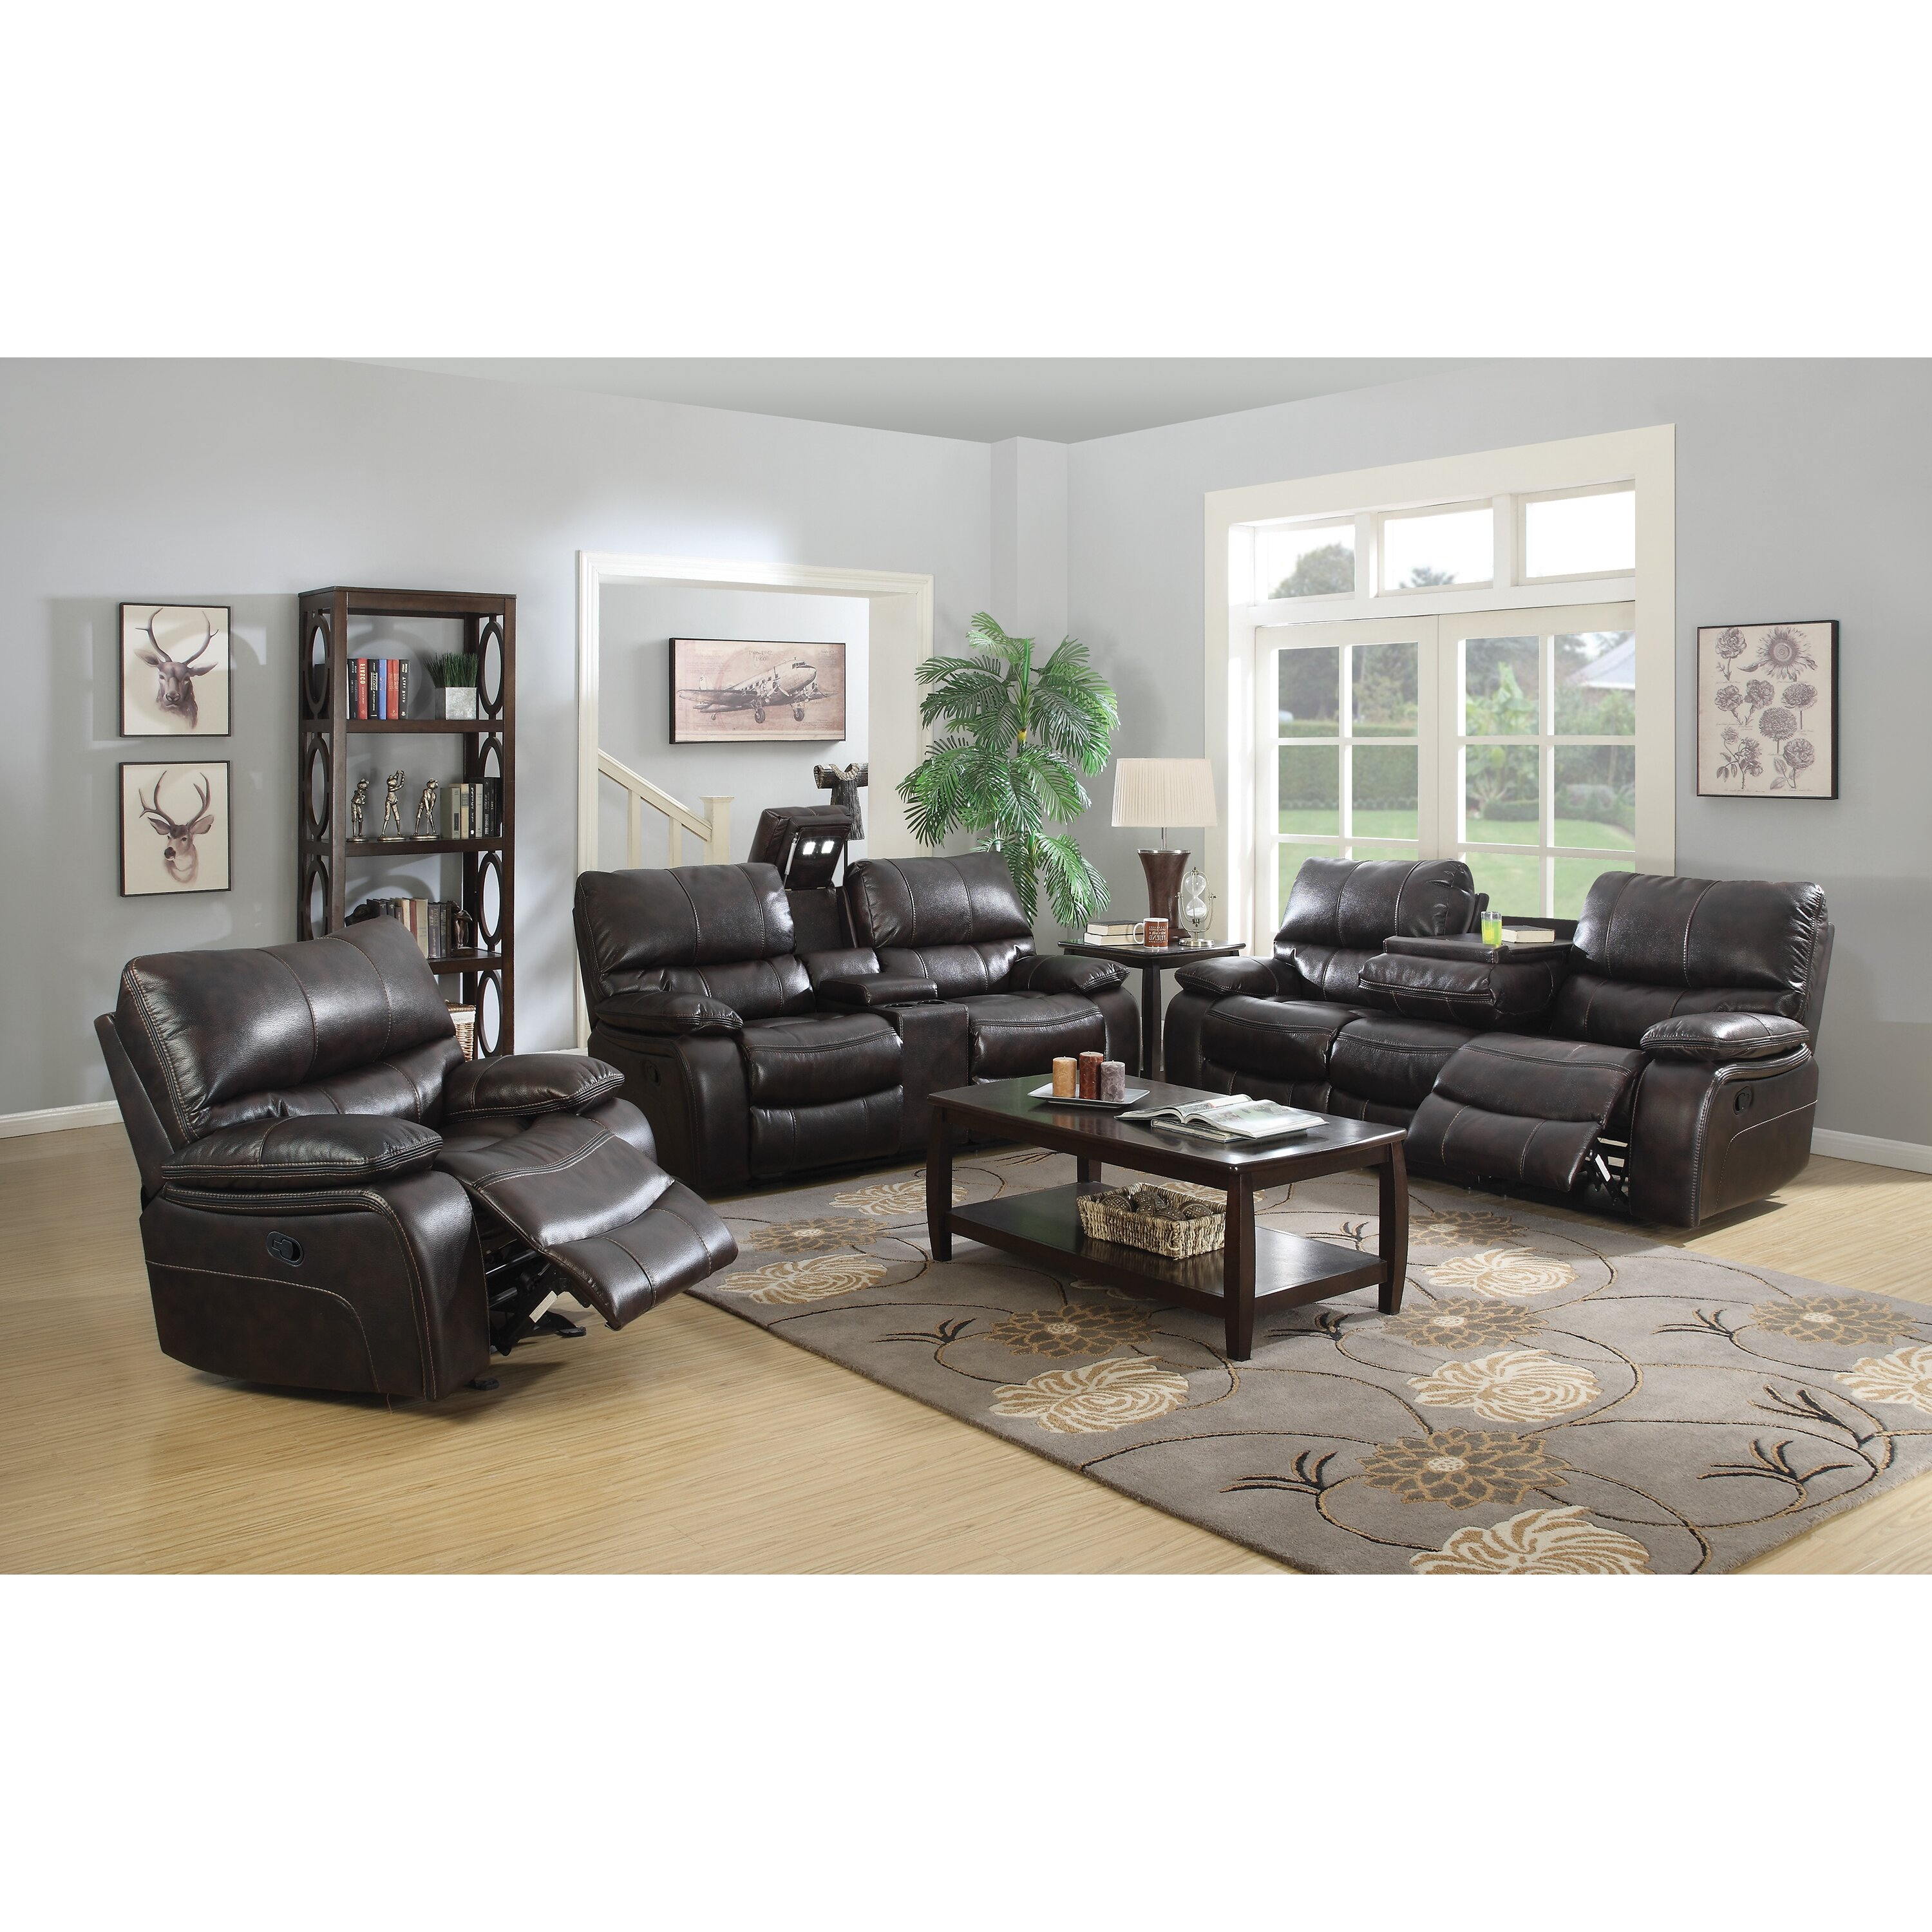 Wildon Home Willemse Motion Leather Reclining Sofa